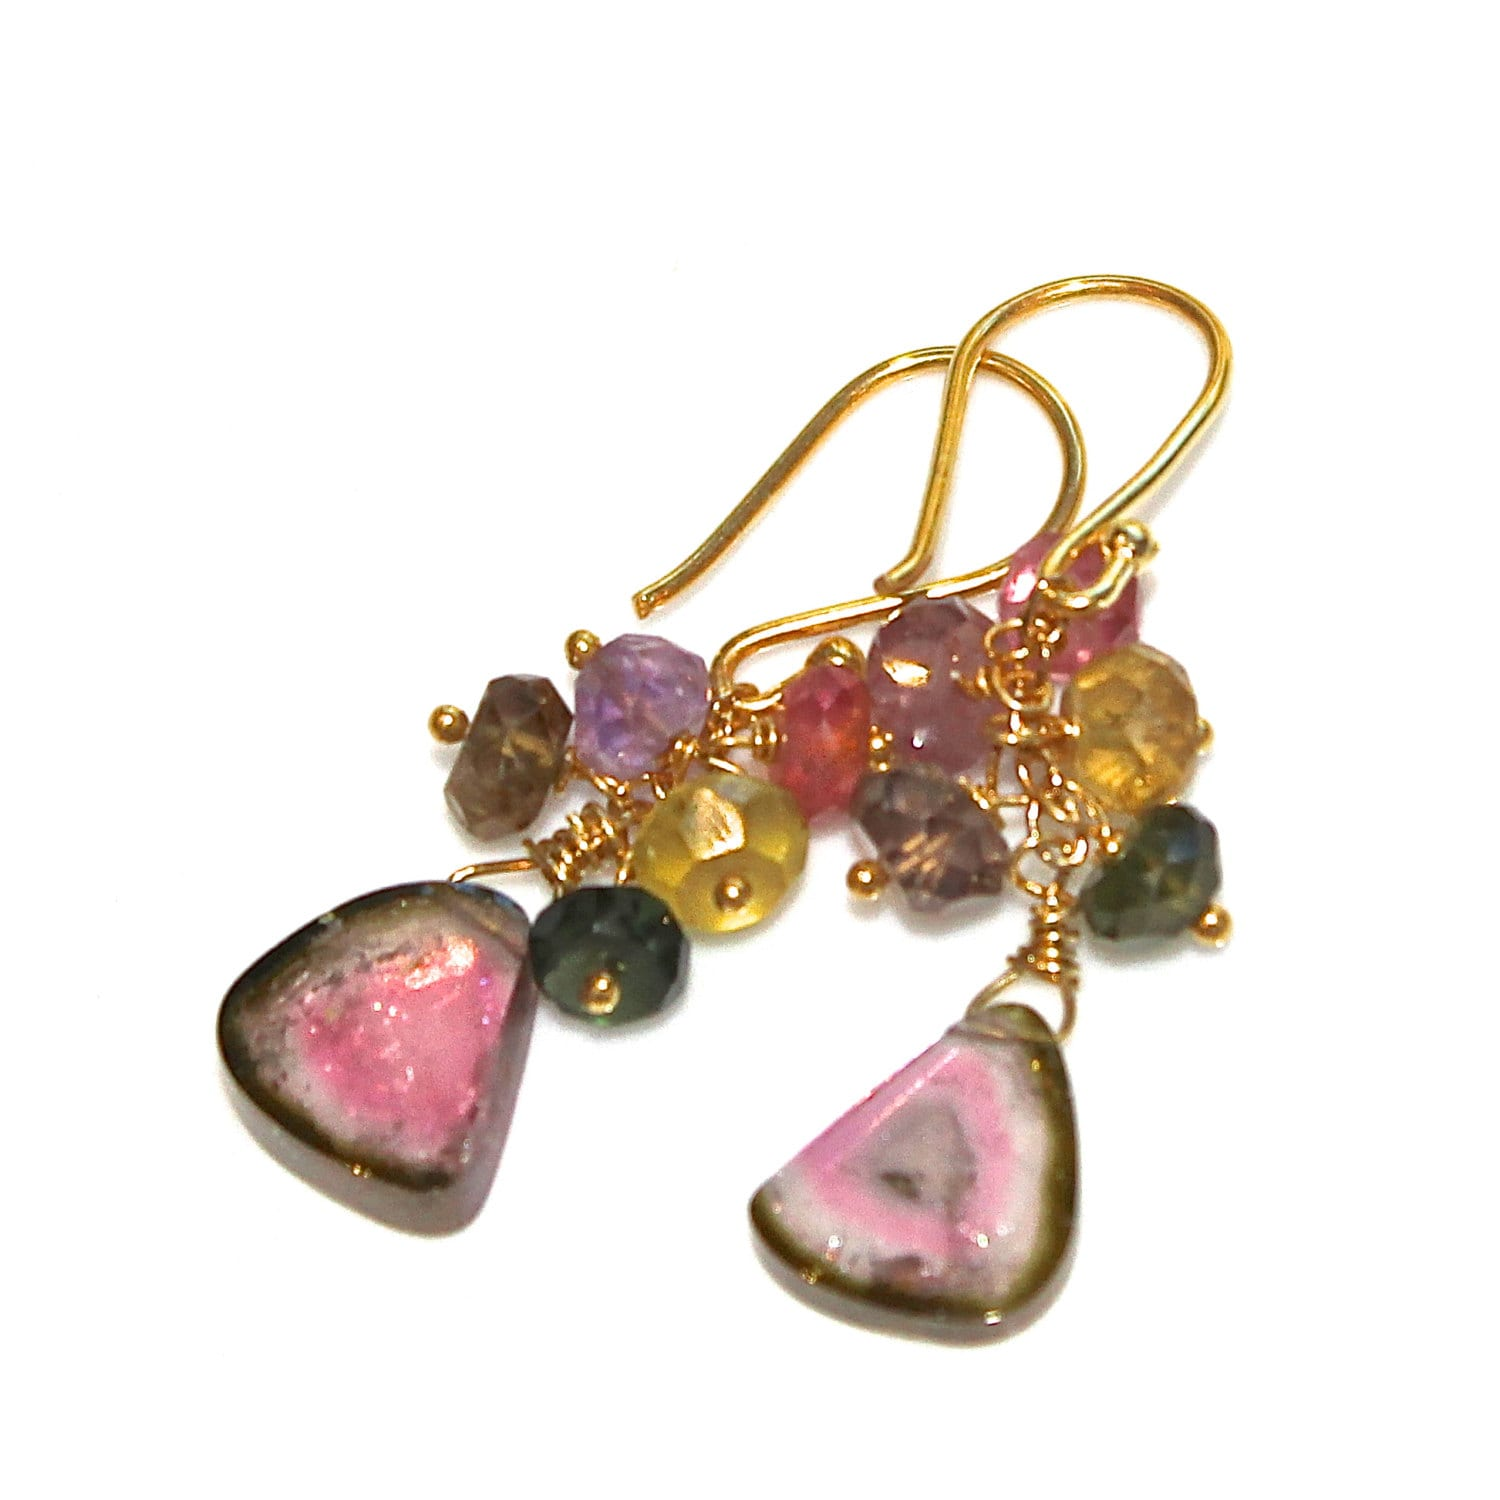 watermelon tourmaline slice earrings pastel tourmaline